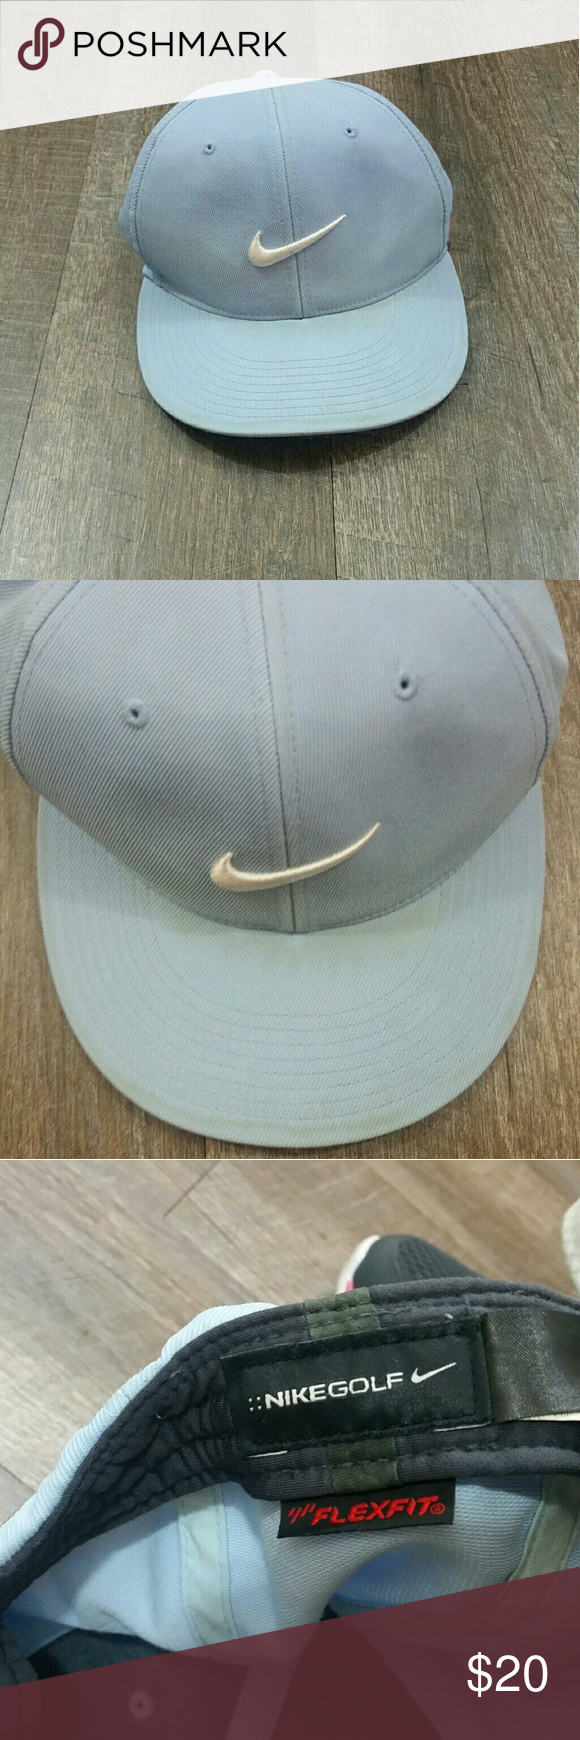 f249dc25022 Nike Golf Hat Flex Fit M L Nike Golf Hat Flex Fit M L light blue and white.  This is in pre owned condition and has been washed.